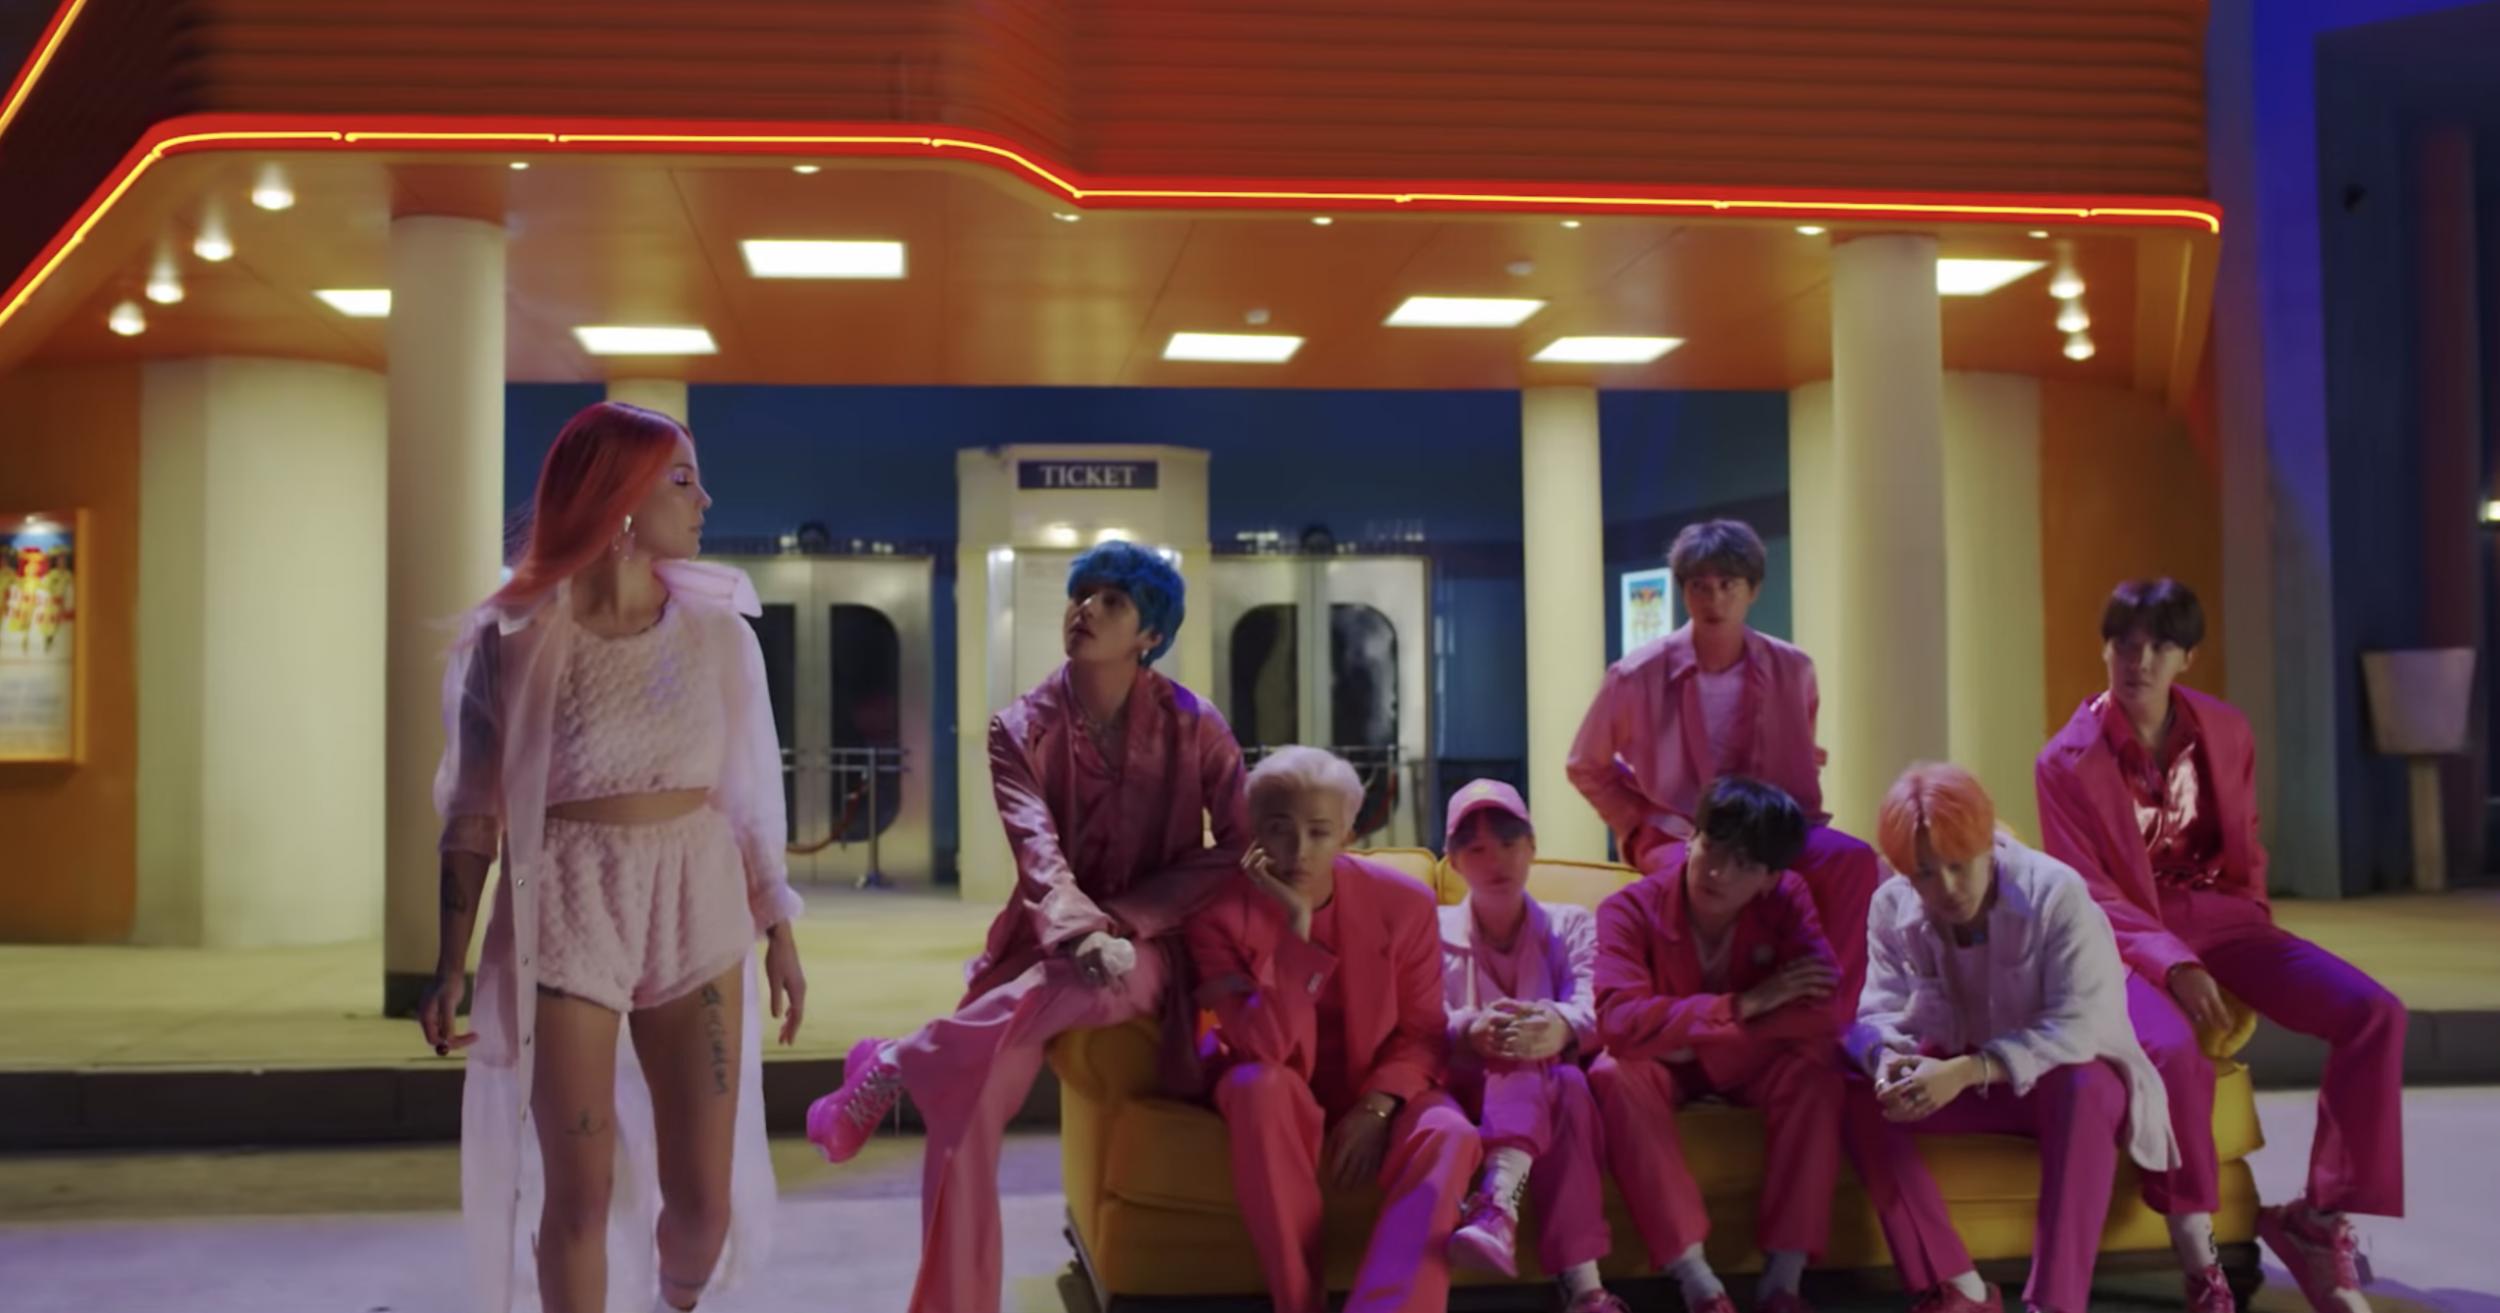 BTS Fans React to 'Boy With Luv' Teaser Featuring Halsey: 'I